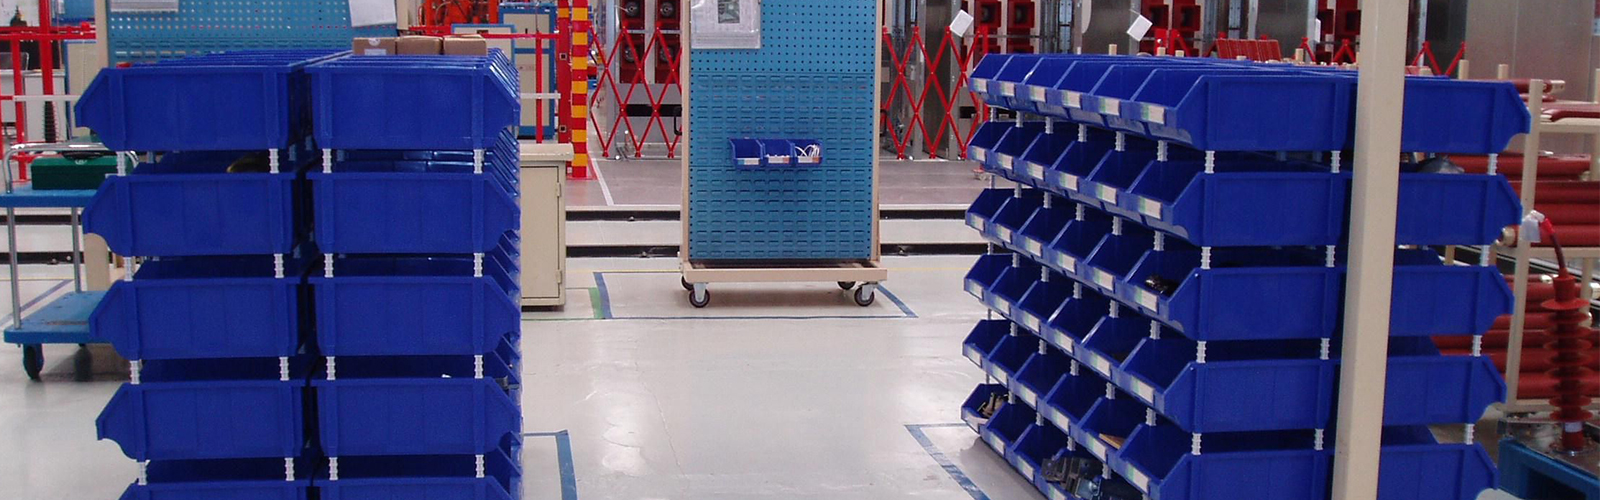 Plastic-Industrial-Storage-Bins-Containers-Header ...